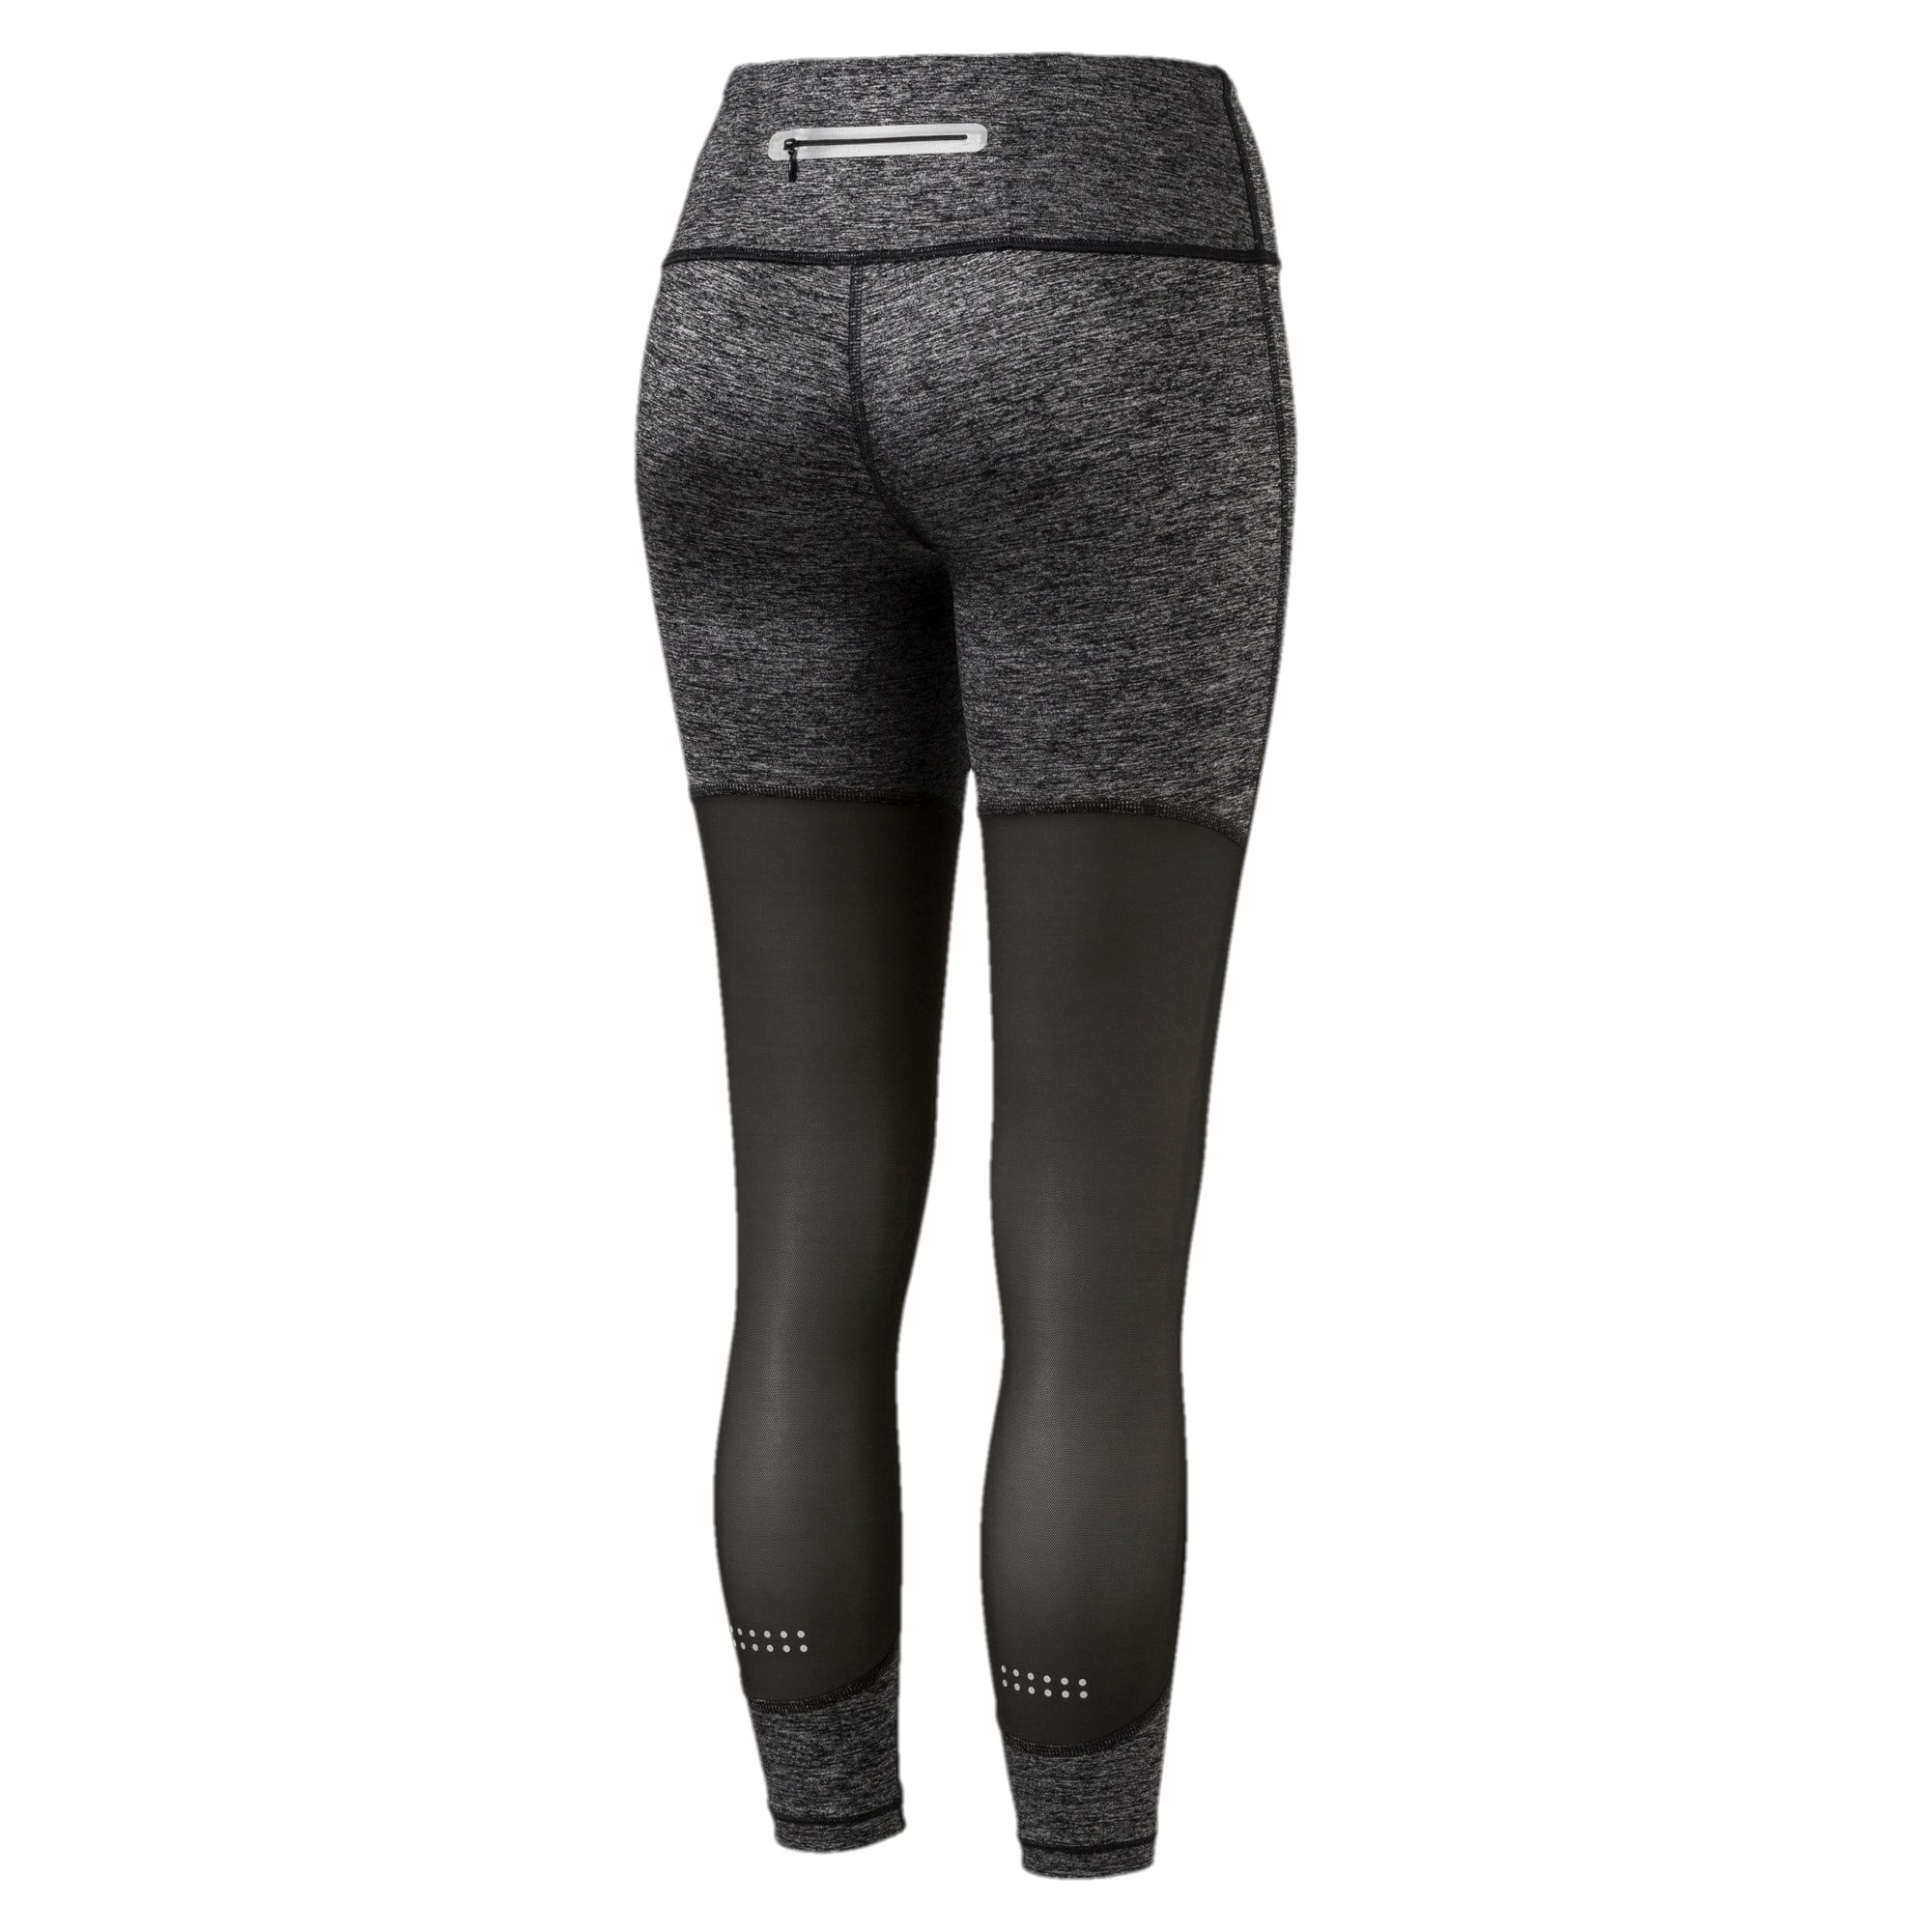 Thumbnail 2 of Explosive Run Women's 7/8 Tights, Puma Black Heather-Puma Blck, medium-IND